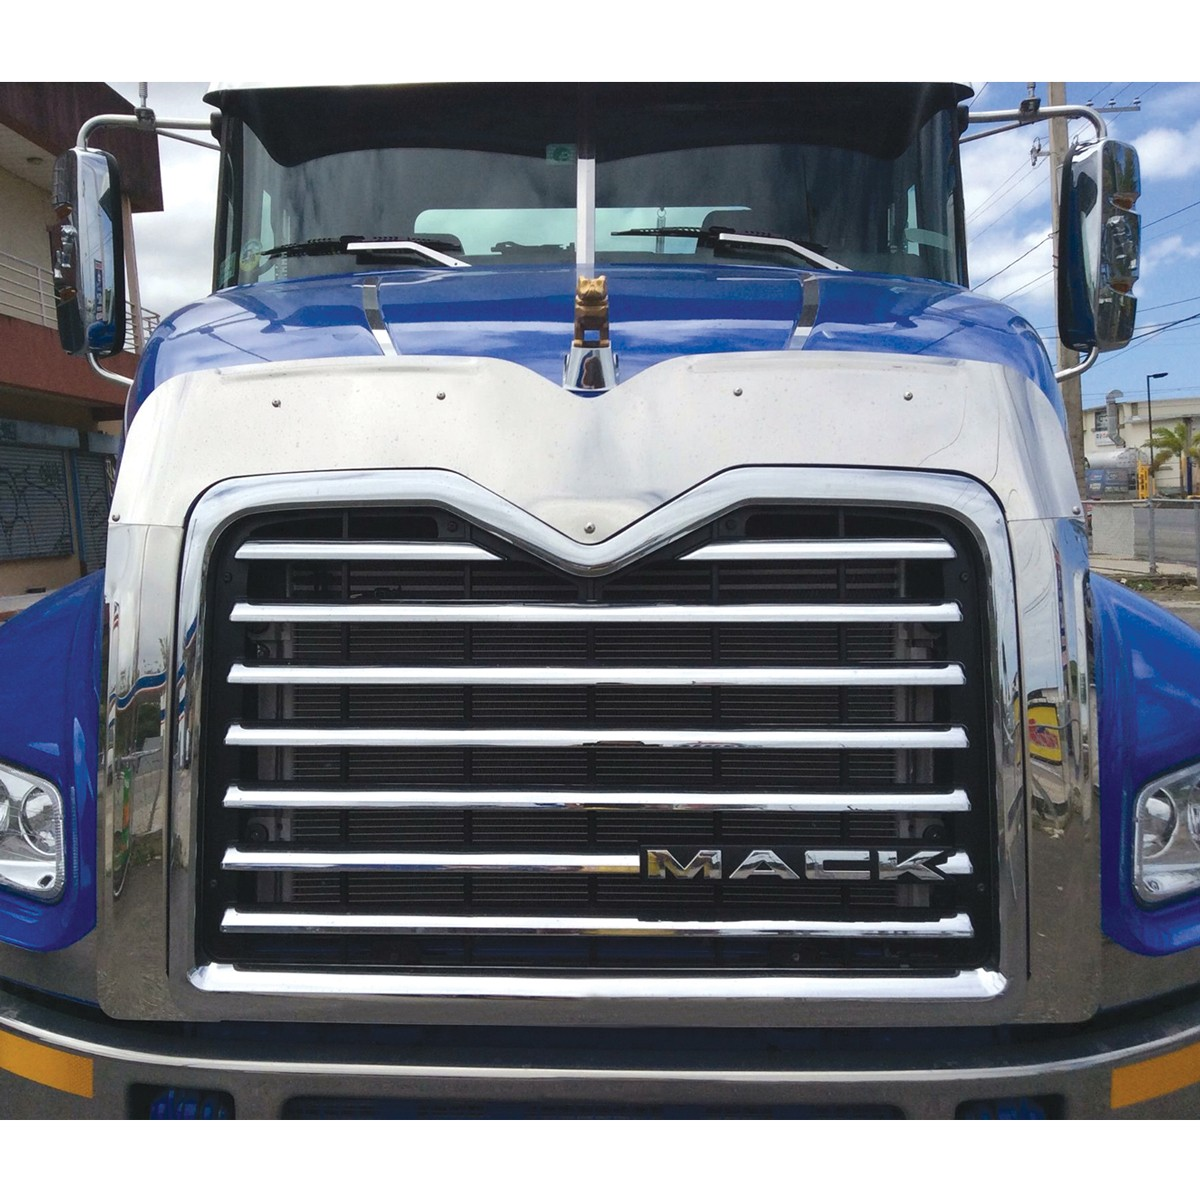 MACK VISION Bug & Side Grill Deflector - Grill Surrounds